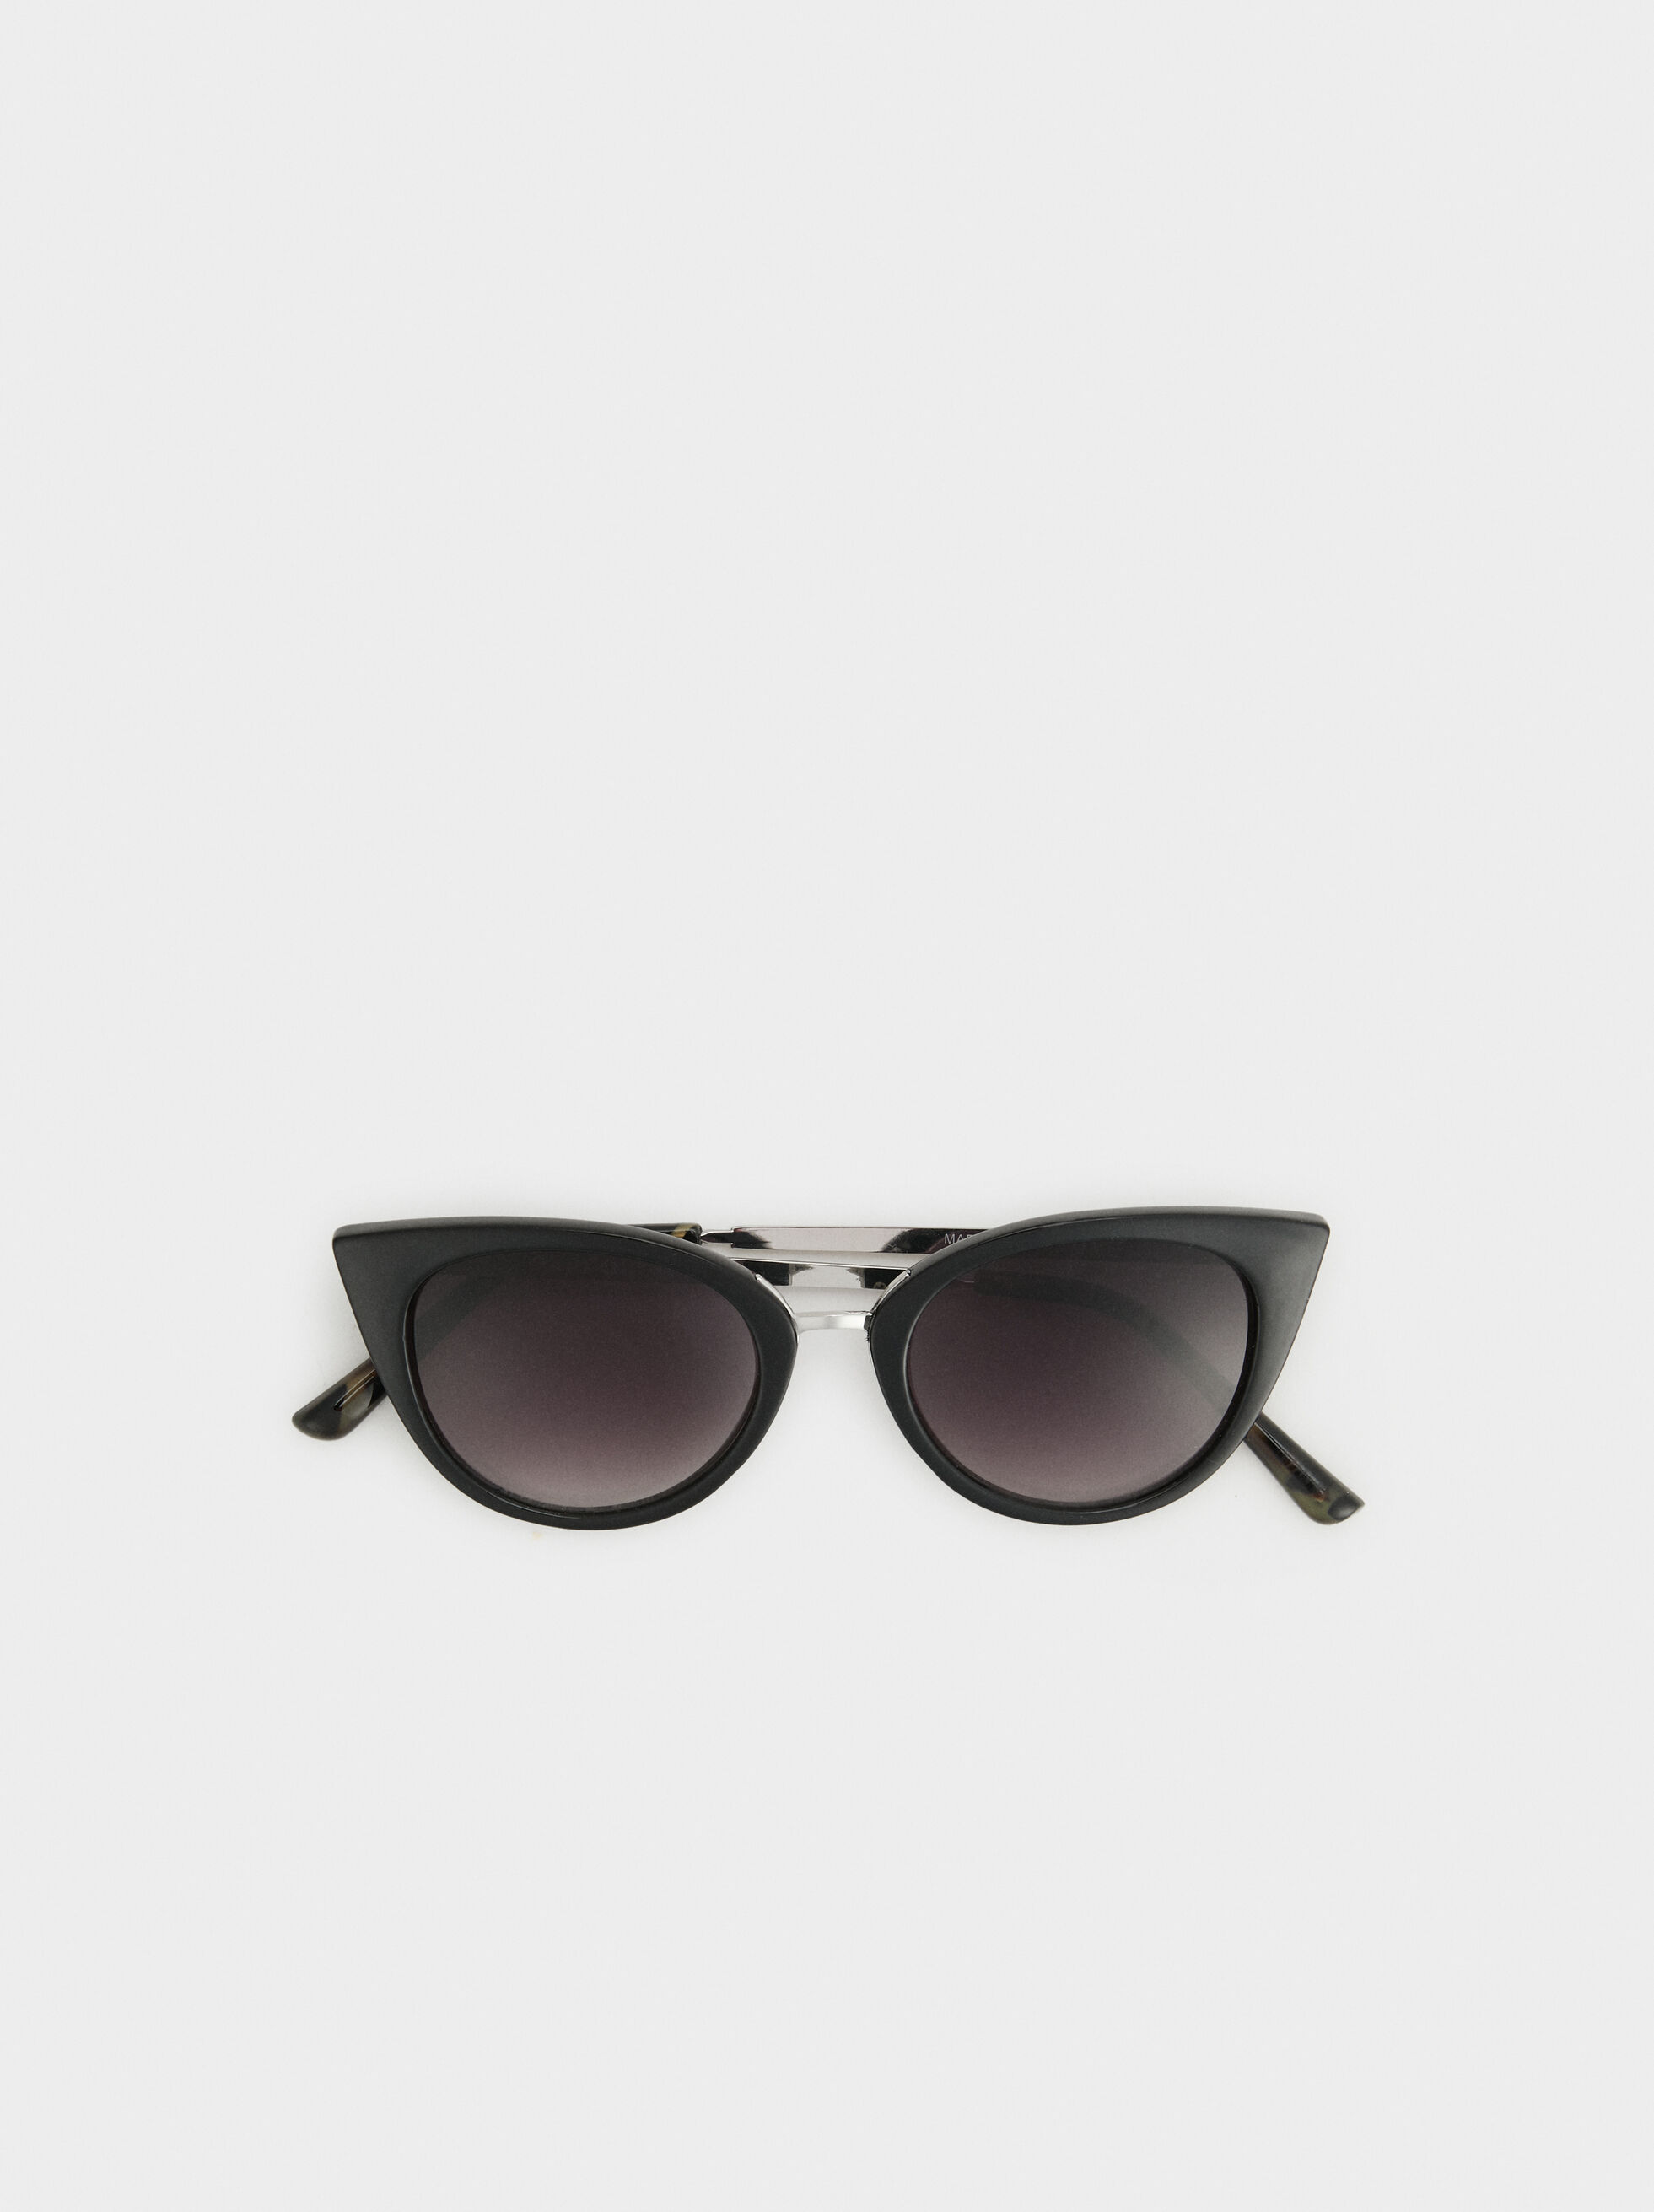 Cat Eye Sunglasses, Black, hi-res